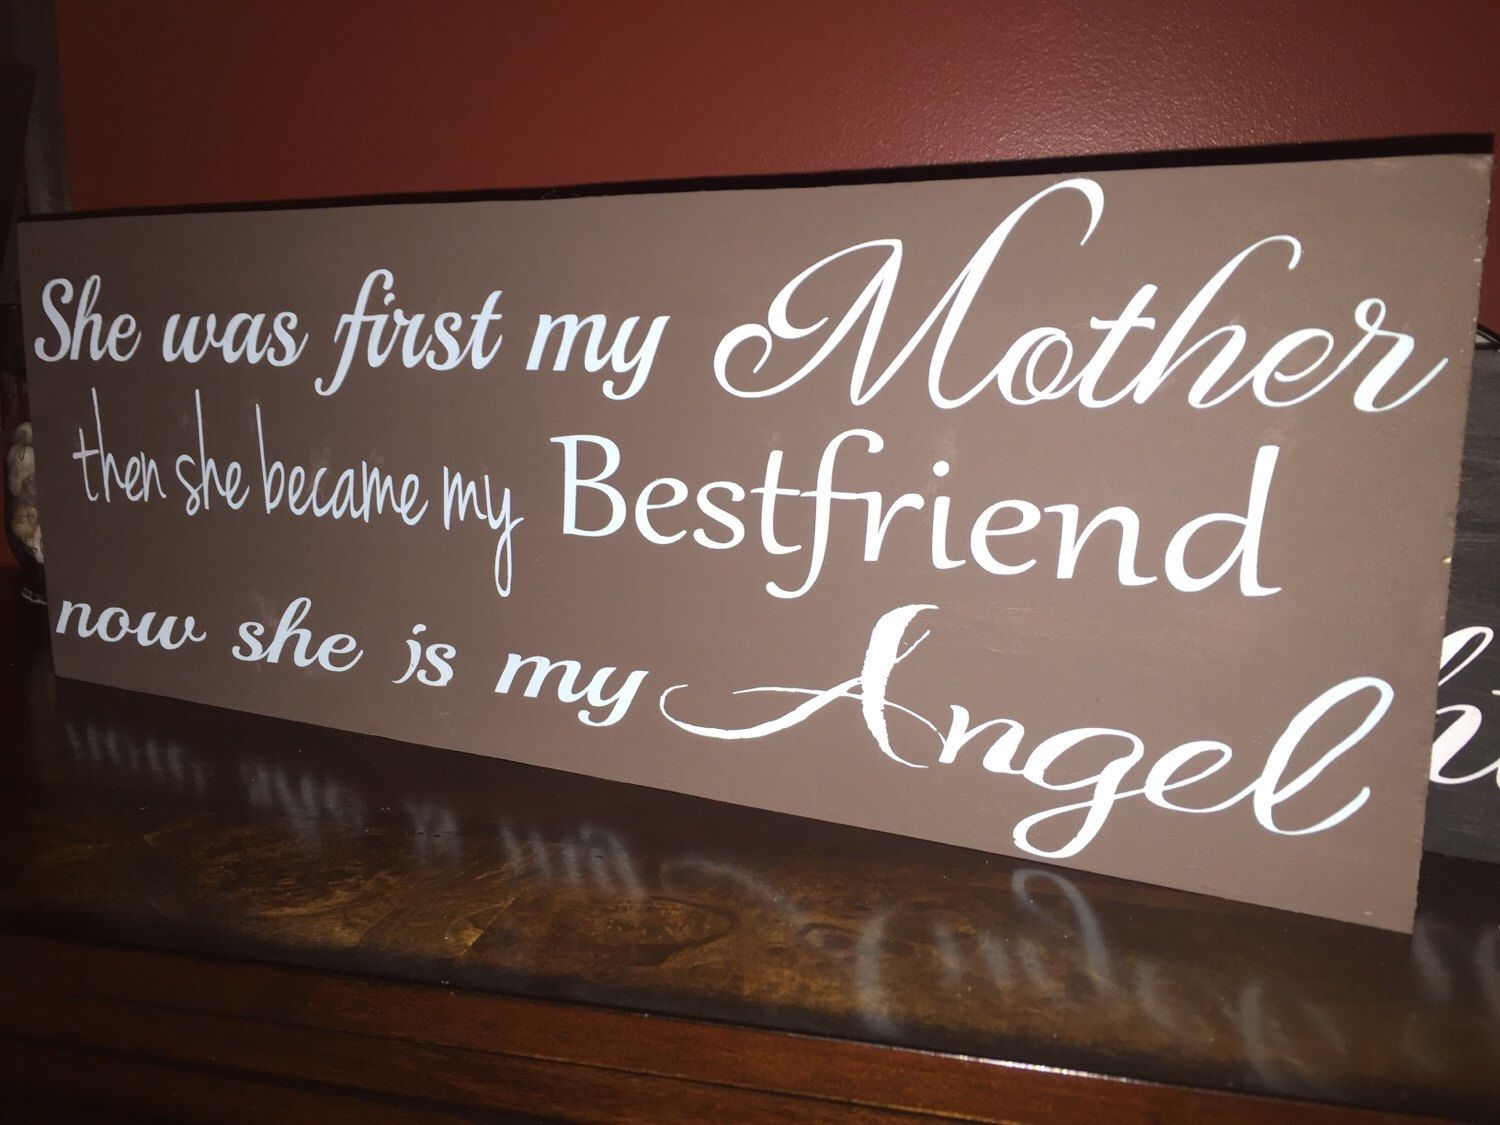 In Loving Memory Quotes Best 25 Memorial Quotes Ideas On In Memory Of 17 Memorial Quotes